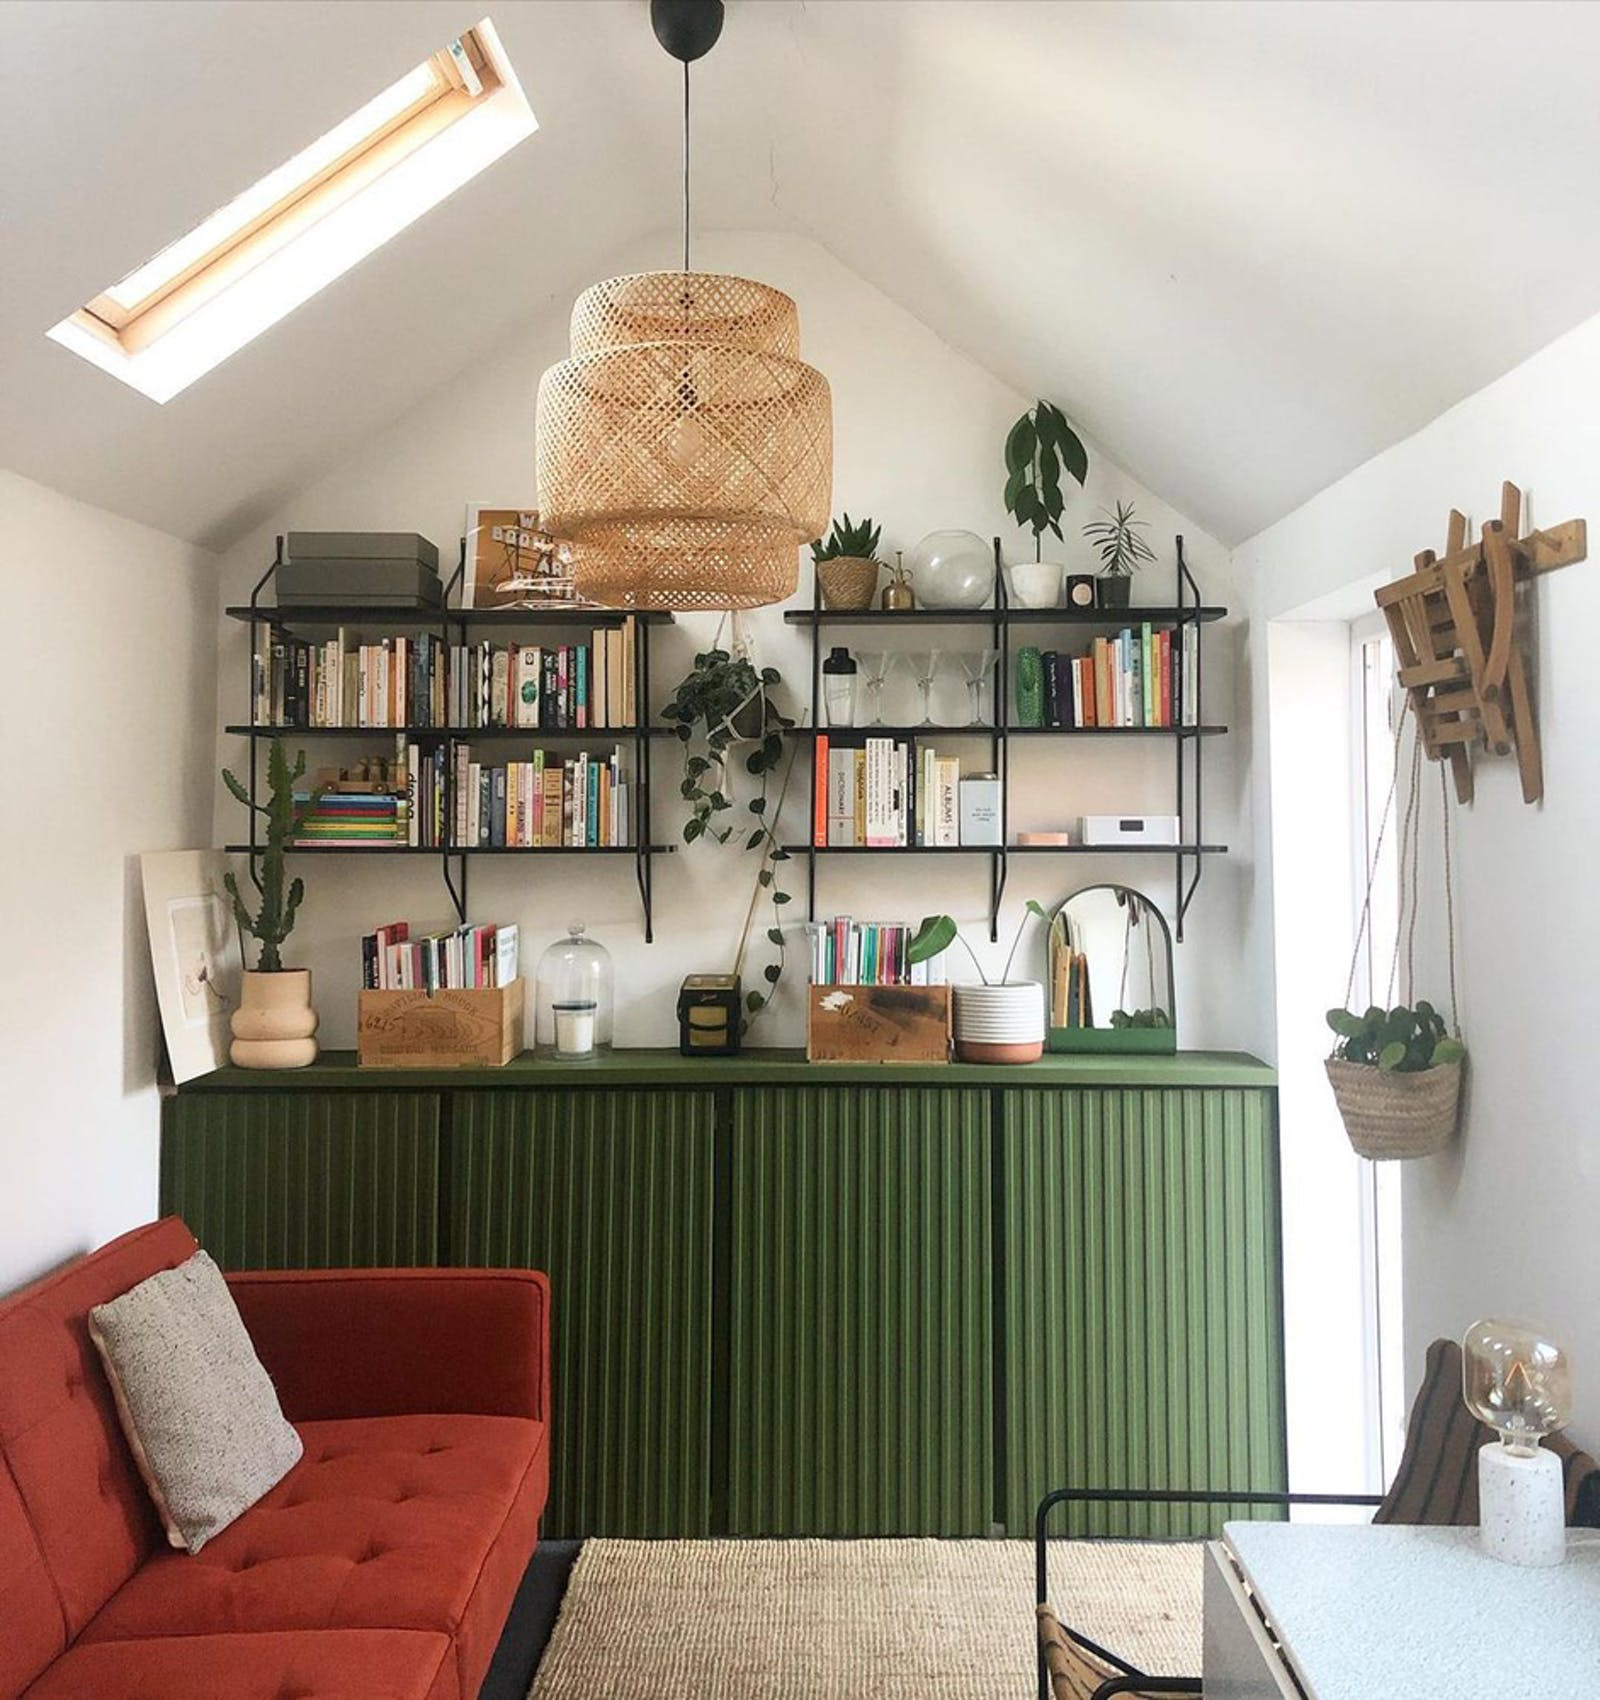 Open shelving on top of green cupboards and hanging plants